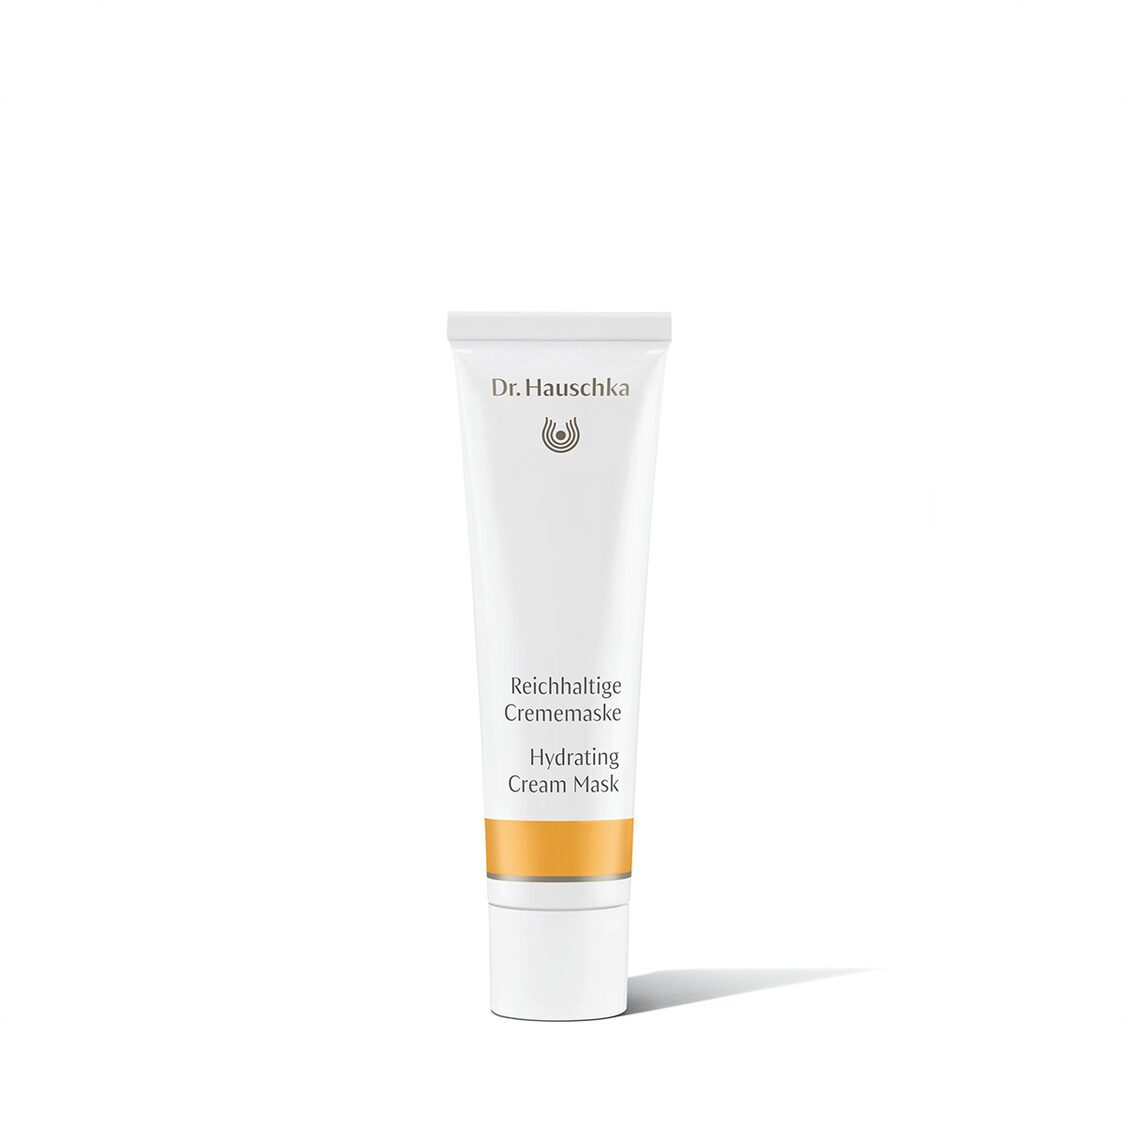 Hydrating Cream Mask 30ml